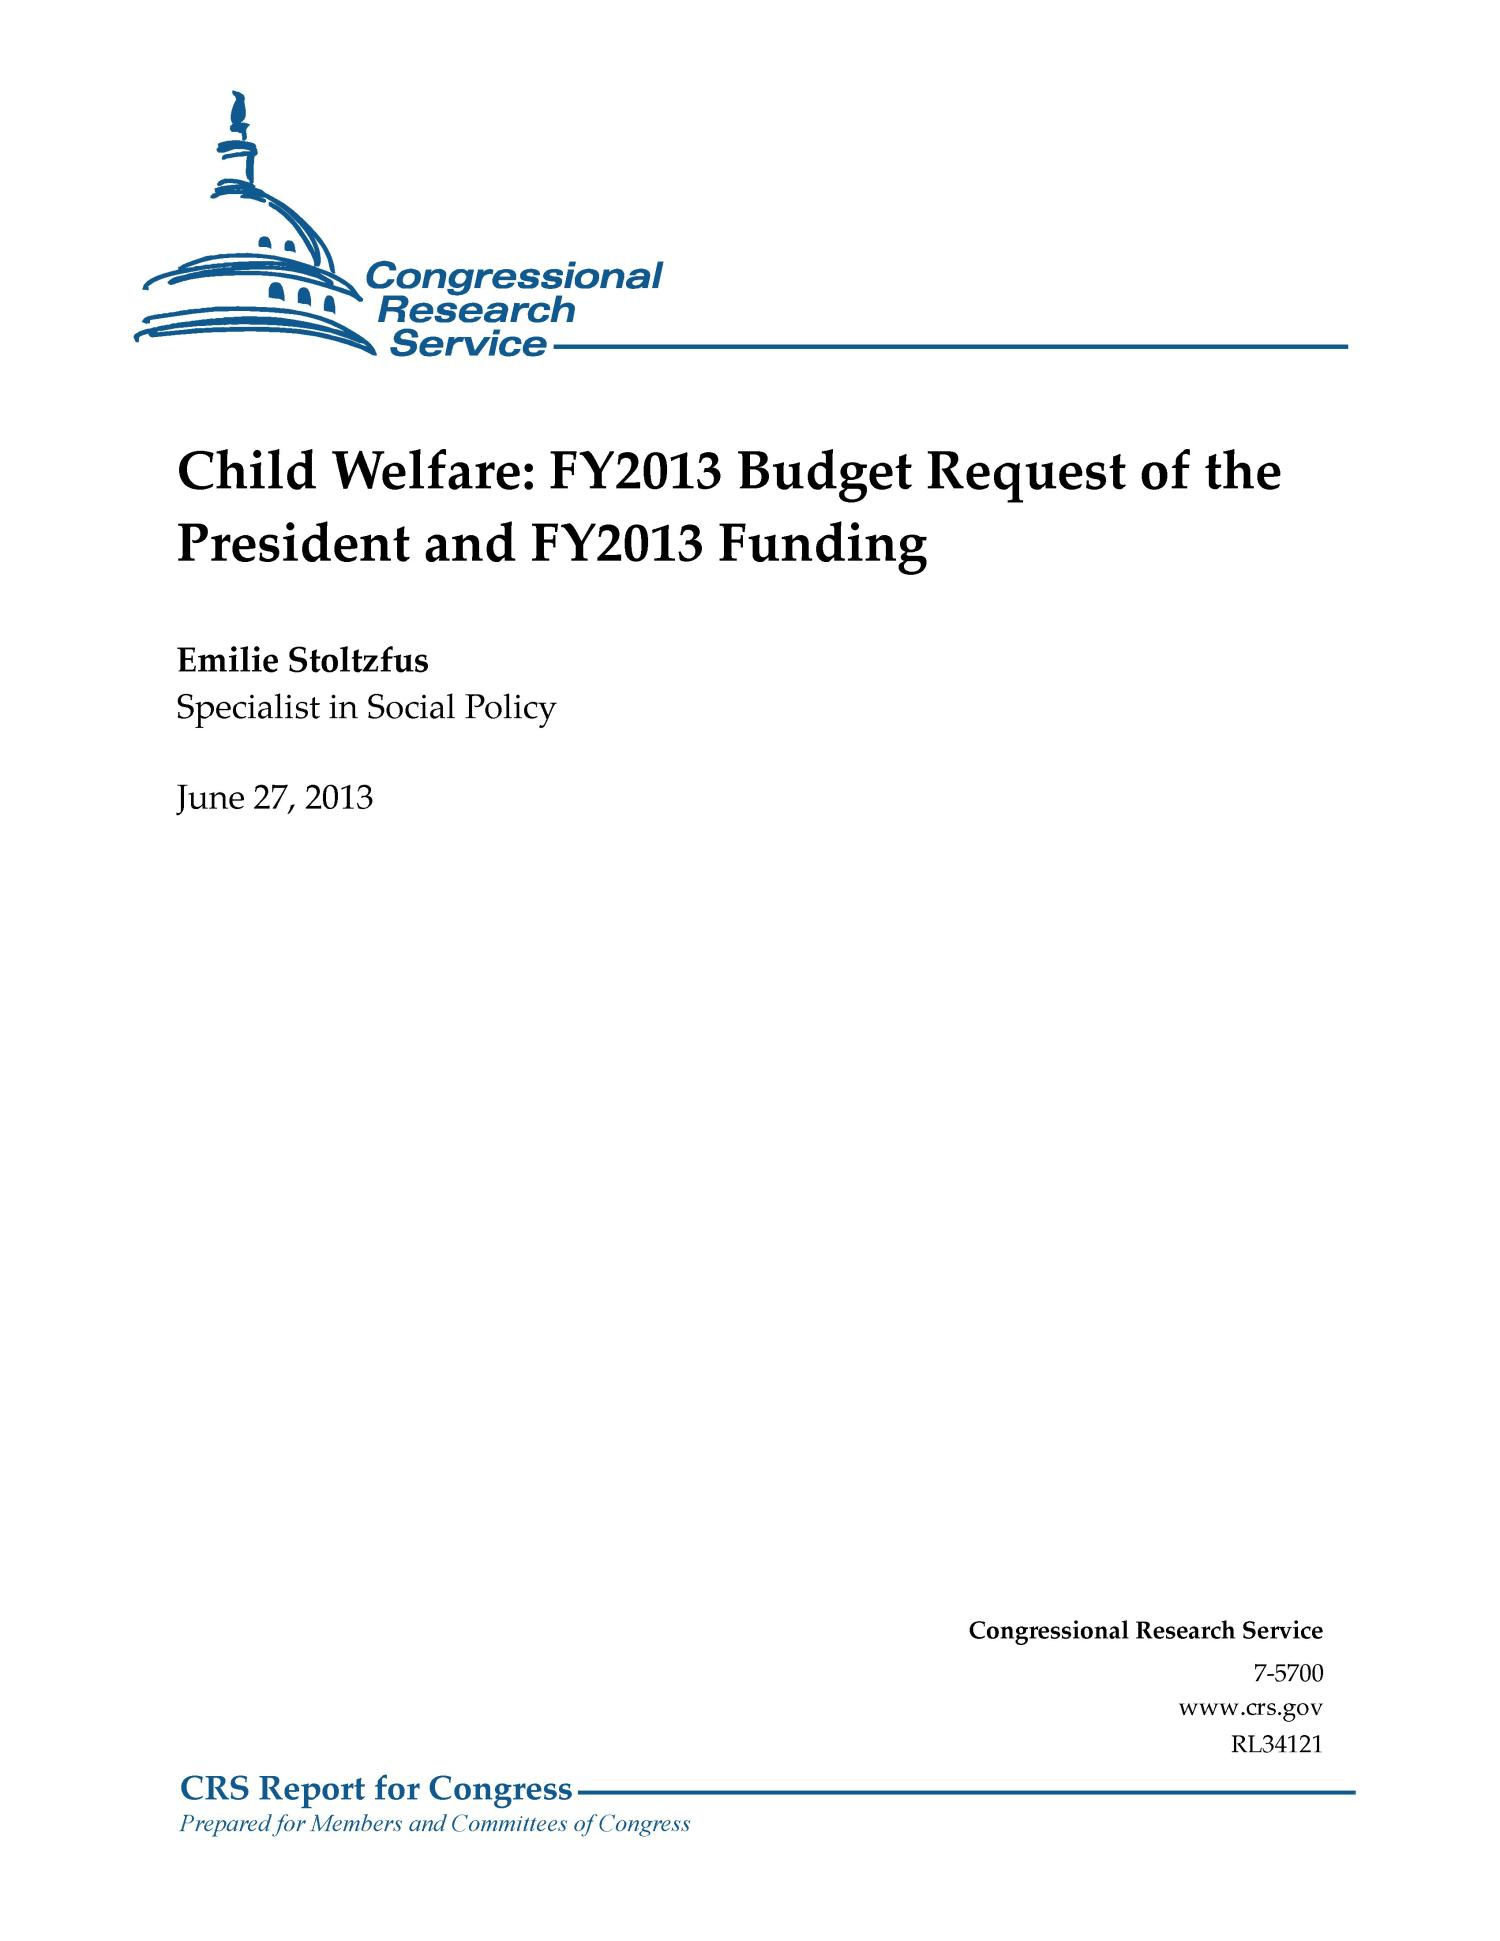 Child Welfare: FY2013 Budget Request of the President and FY2013 Funding                                                                                                      [Sequence #]: 1 of 31